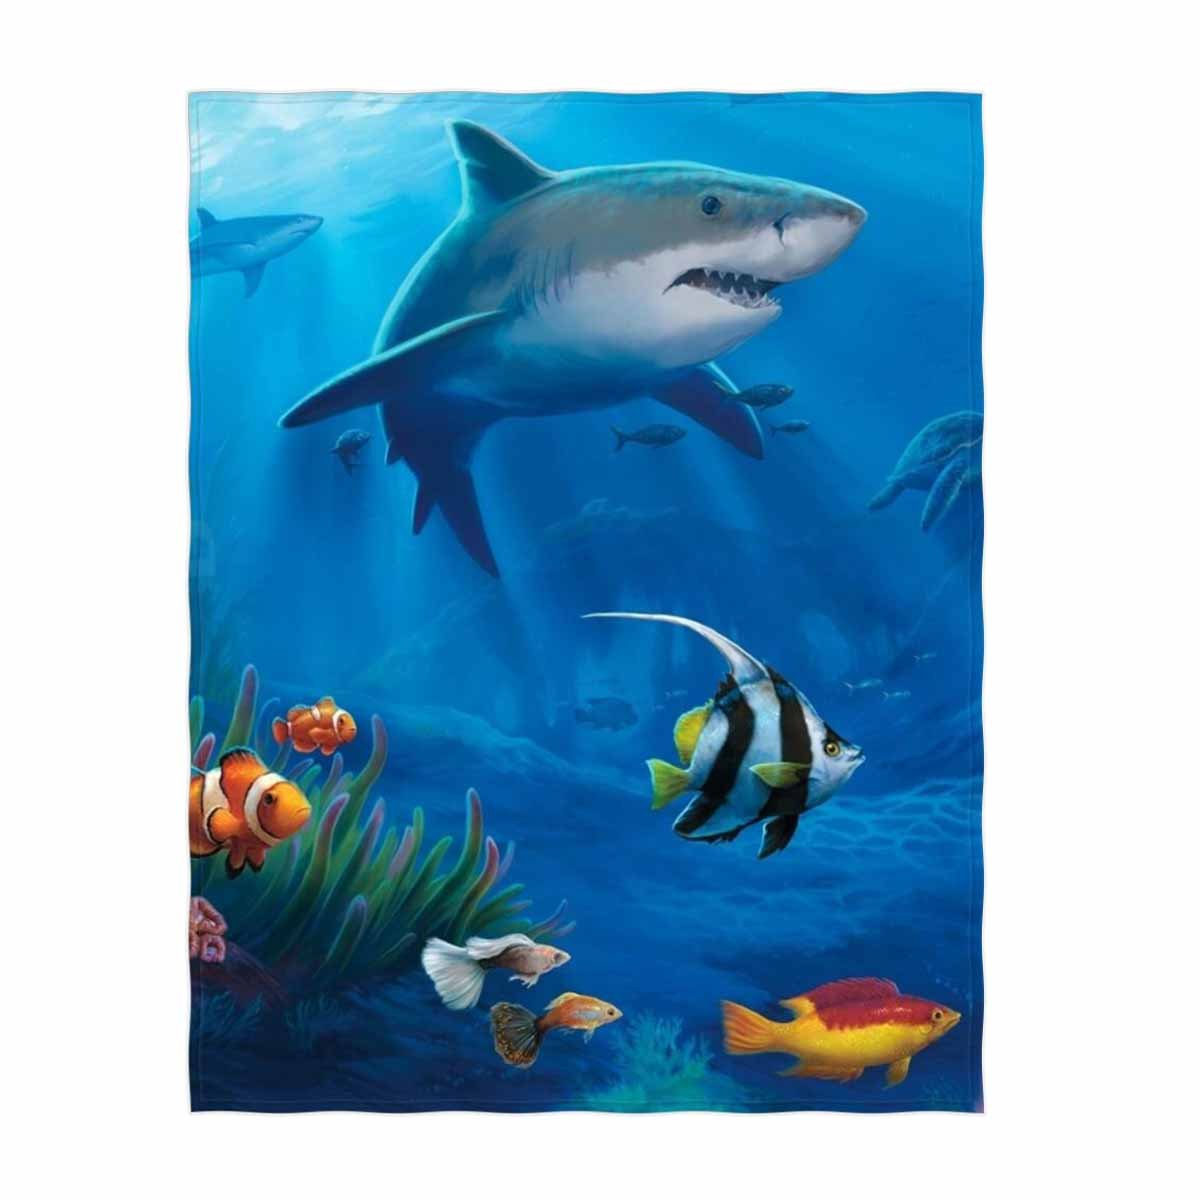 Custom Design Shark Seafish Printing Velvet Plush Throw Blanket Cozy Fleece Blanket Perfect for Couch Sofa bed or Travelling Queen Size